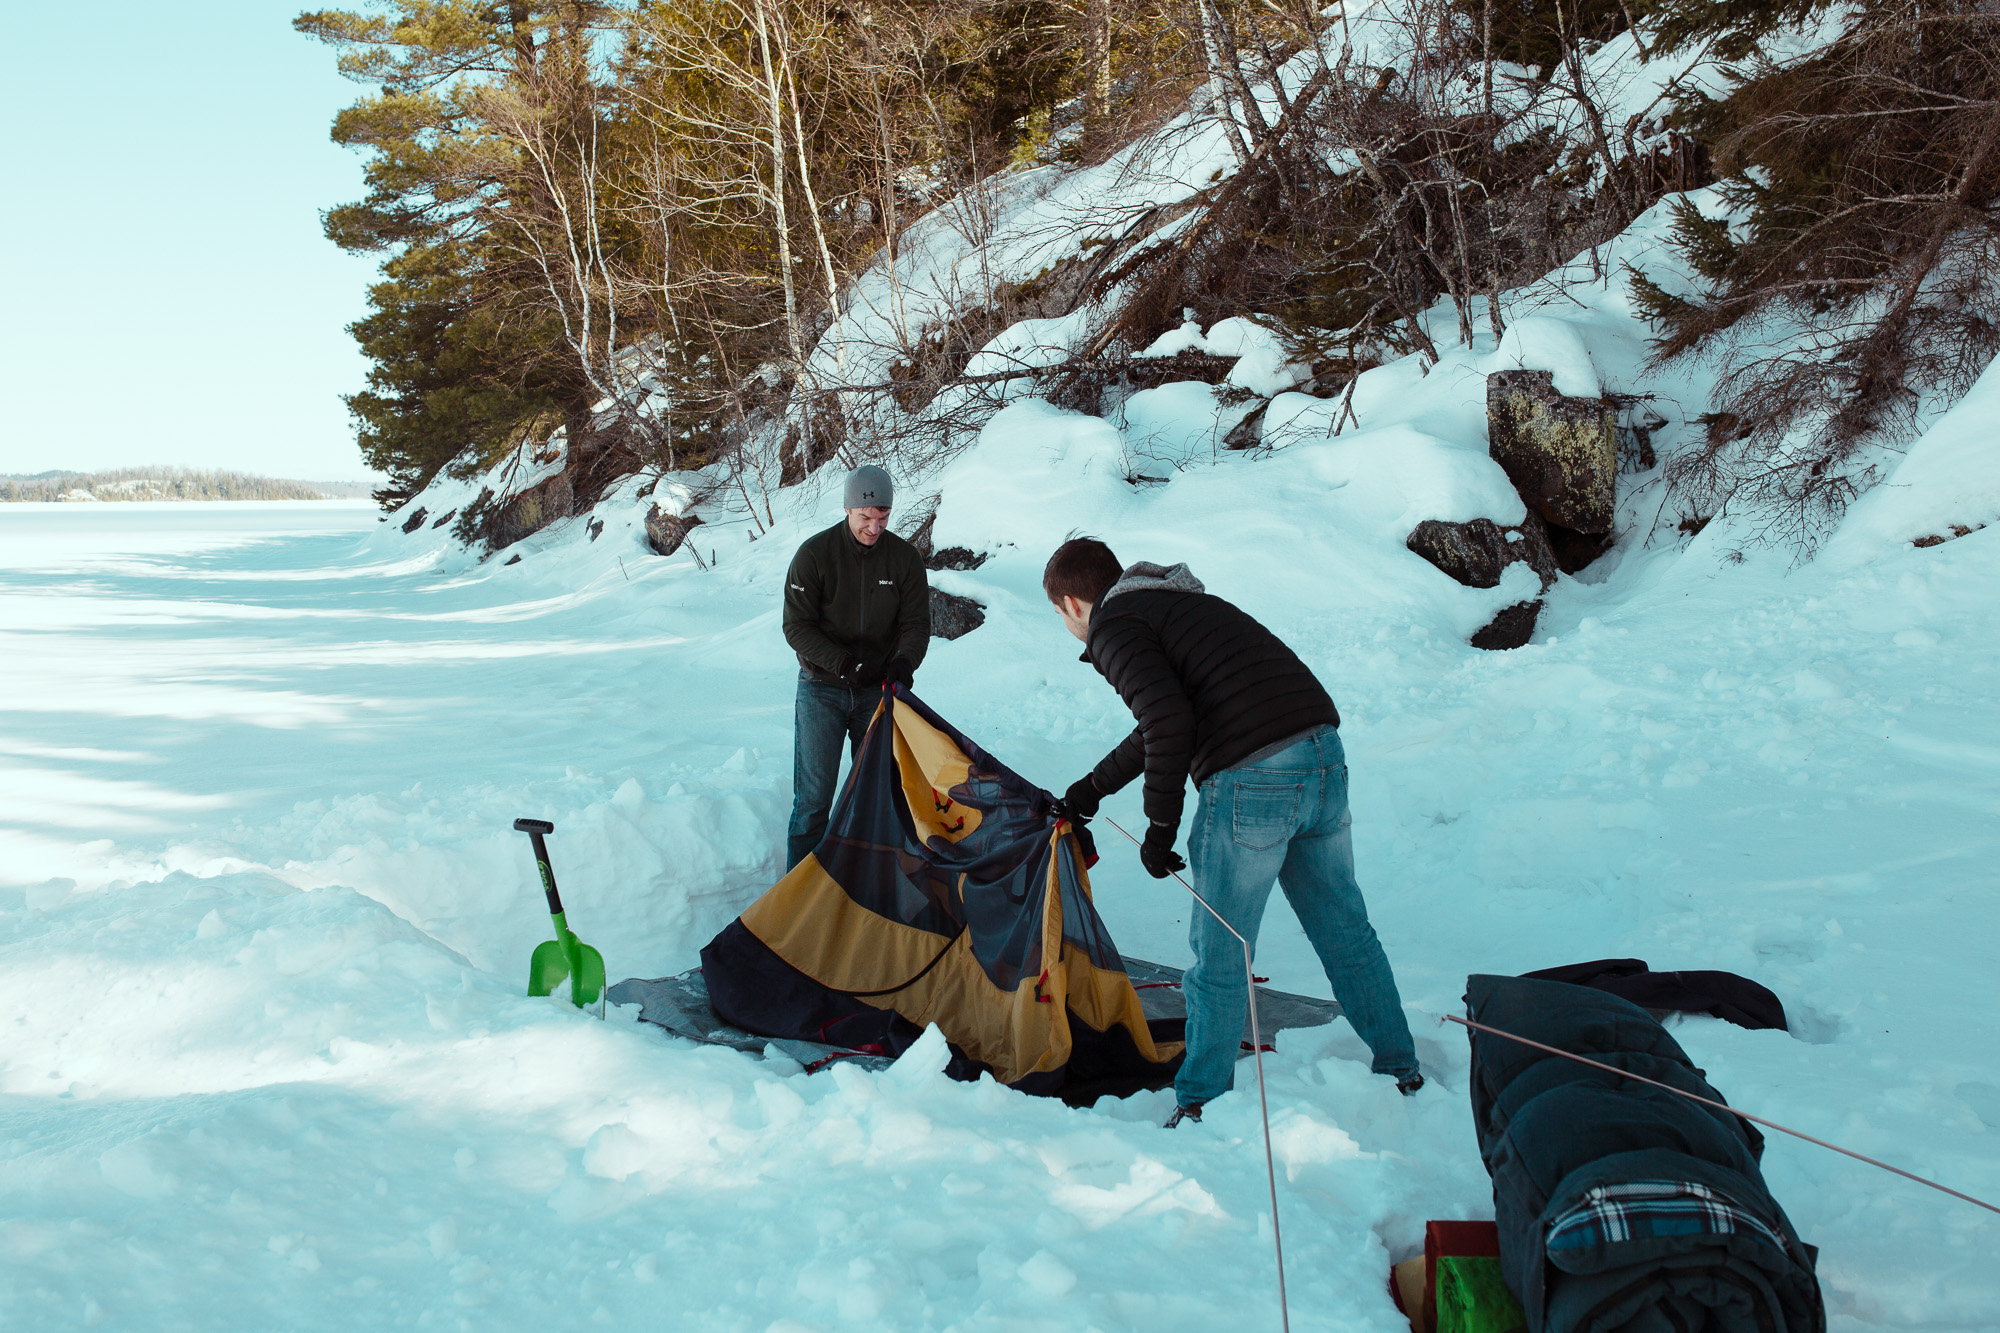 Setting up tent on frozen lake